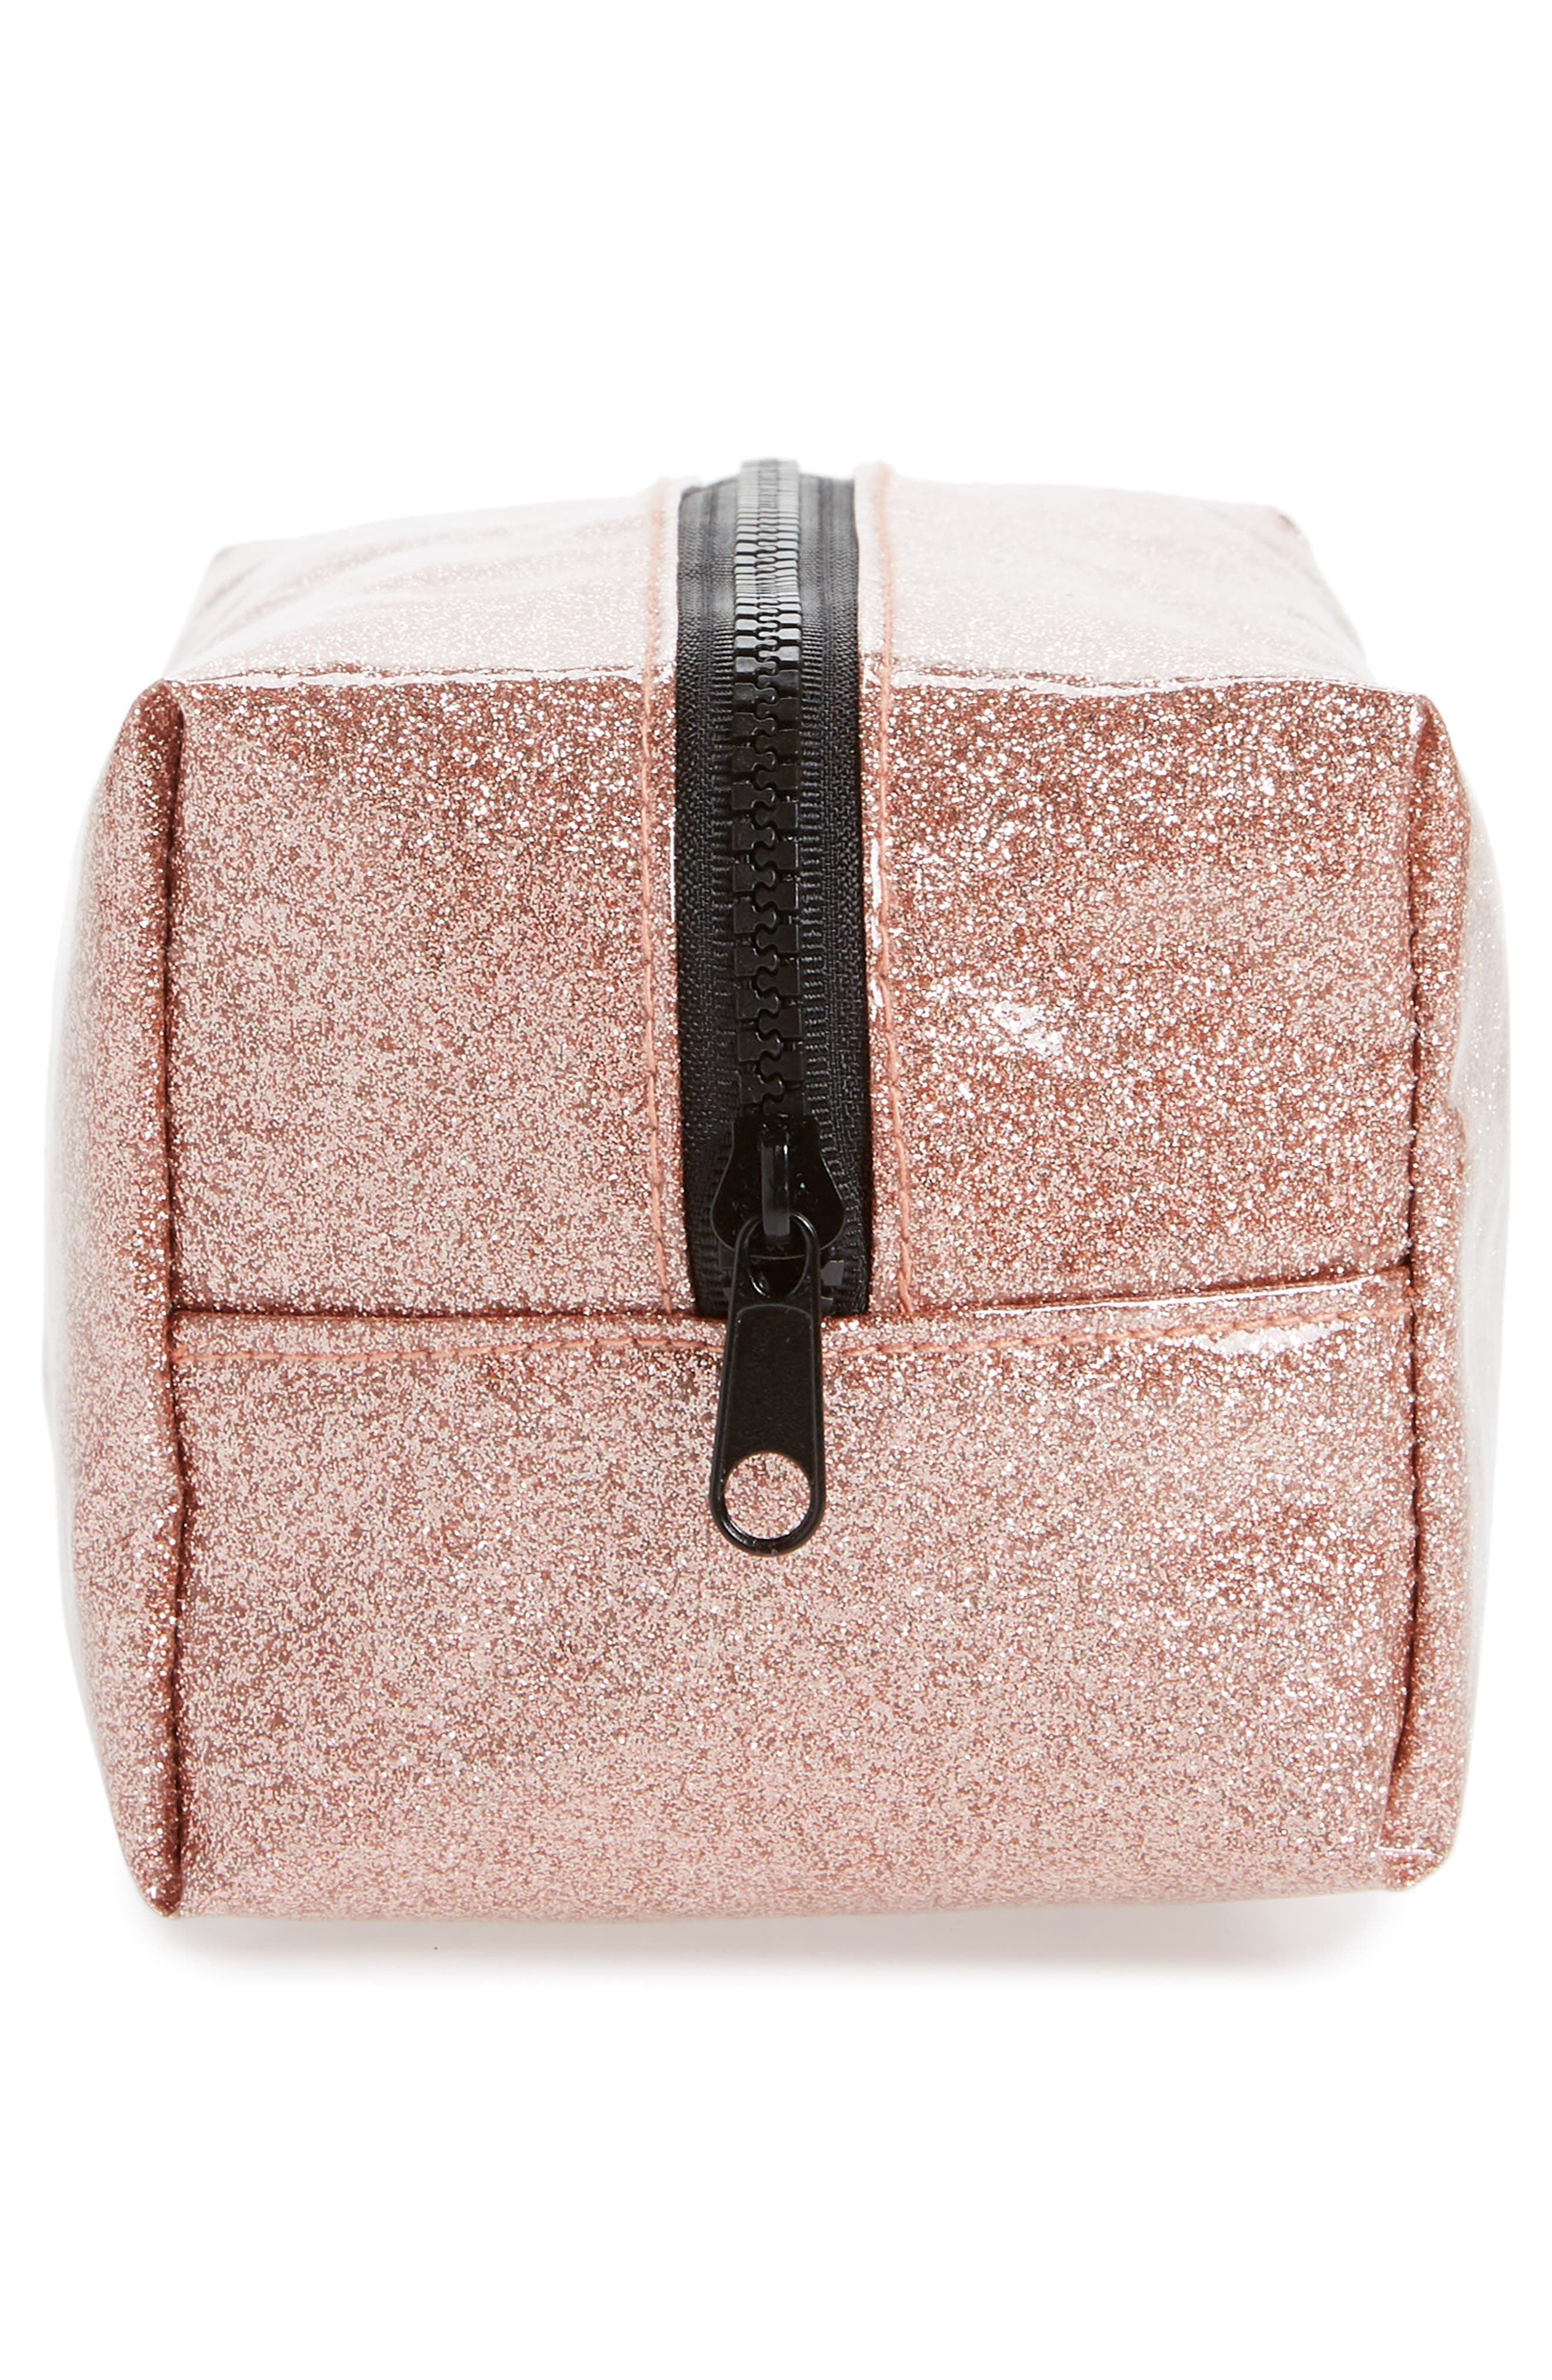 Cosmetics Case,                             Alternate thumbnail 4, color,                             ROSE GOLD